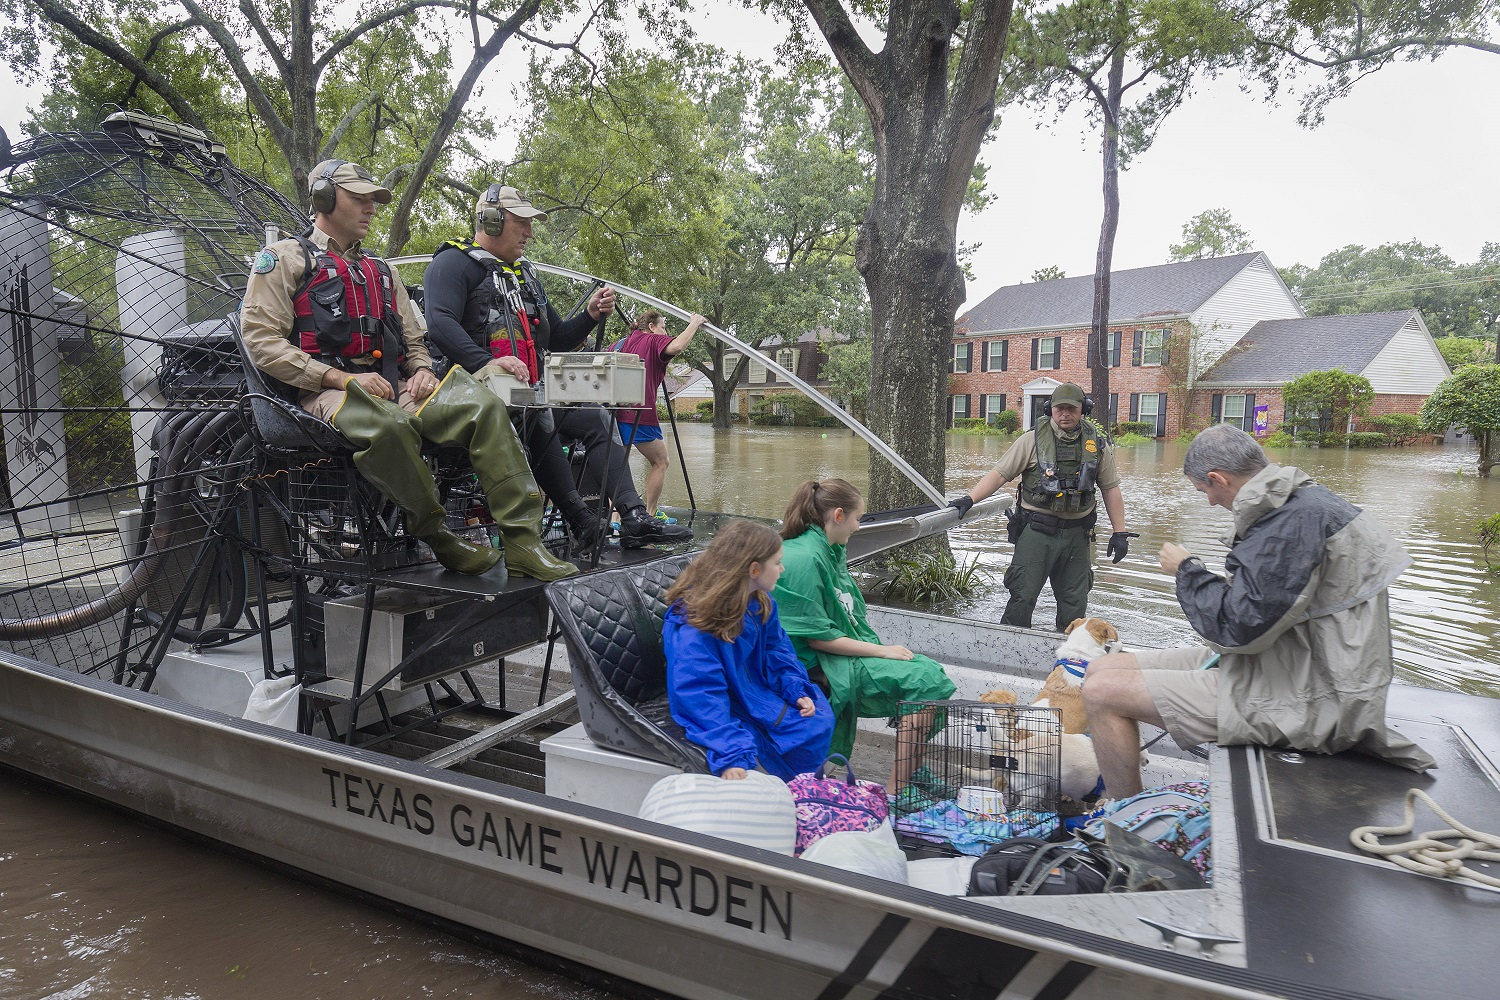 Game Wardens evacuating flood victims after Hurricane Harvey. Image by Earl Nottingham.